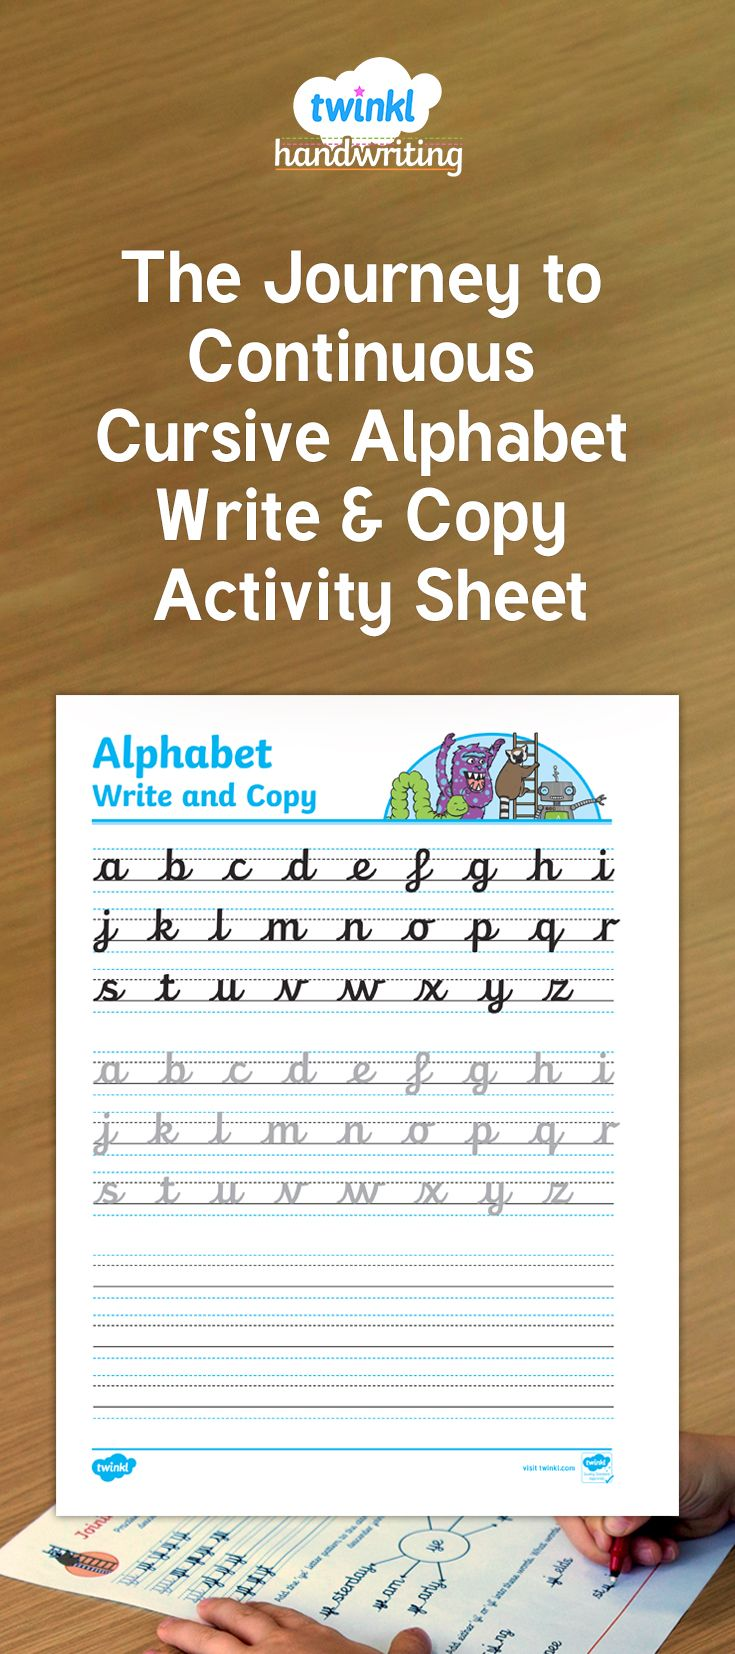 a fantastic alphabet assessment activity sheet to accompany the twinkl handwriting scheme the. Black Bedroom Furniture Sets. Home Design Ideas